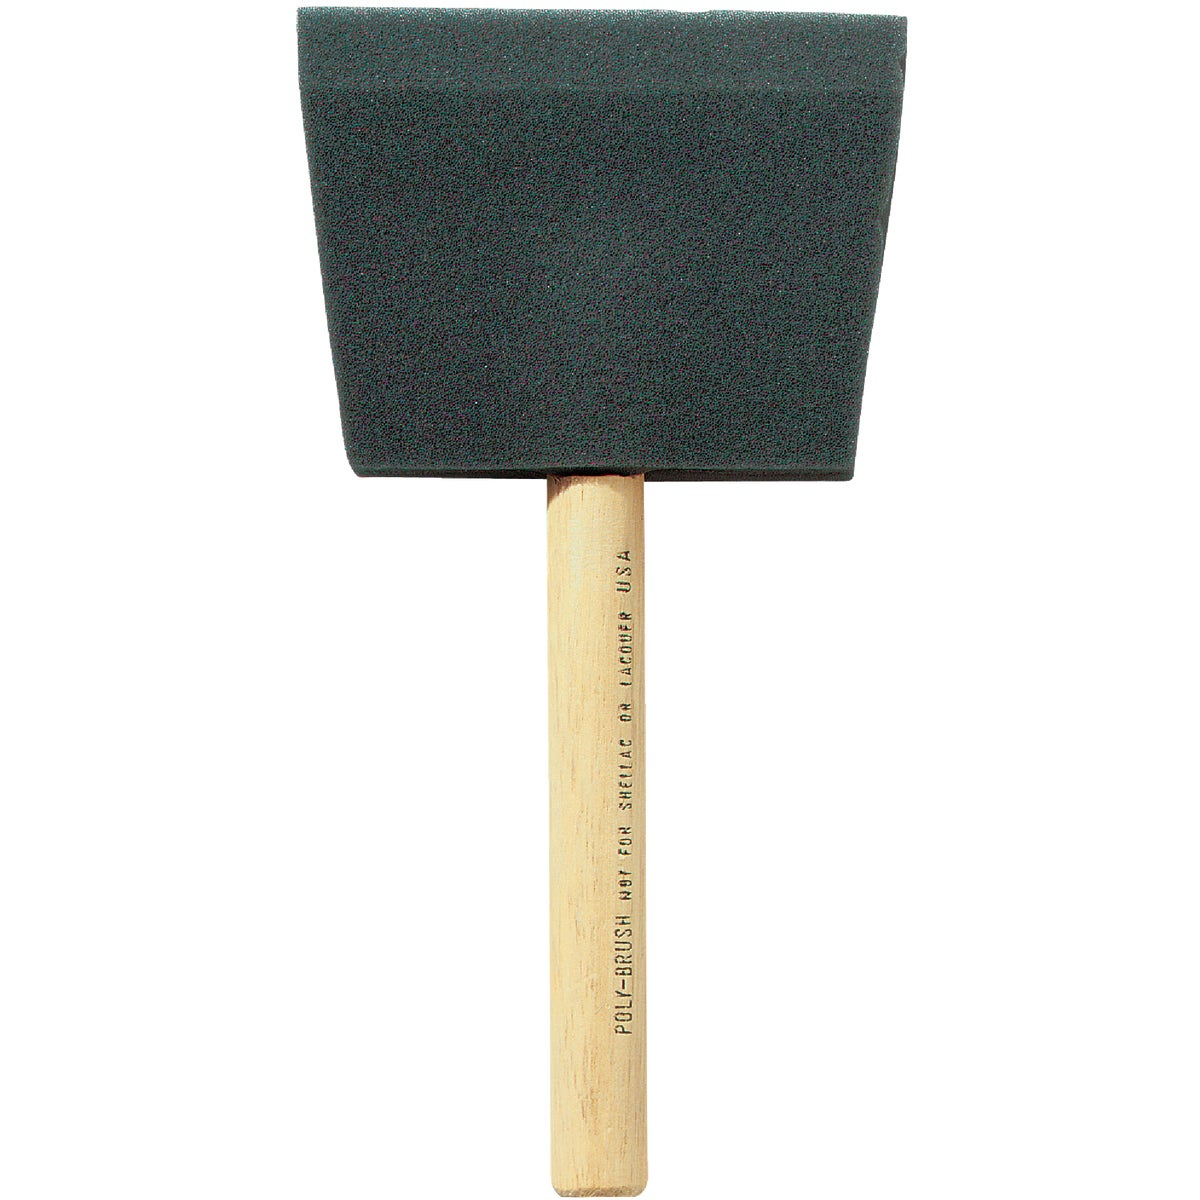 "4"" FOAM BRUSH - FOAM BRUSH by Jen Mfg Inc"